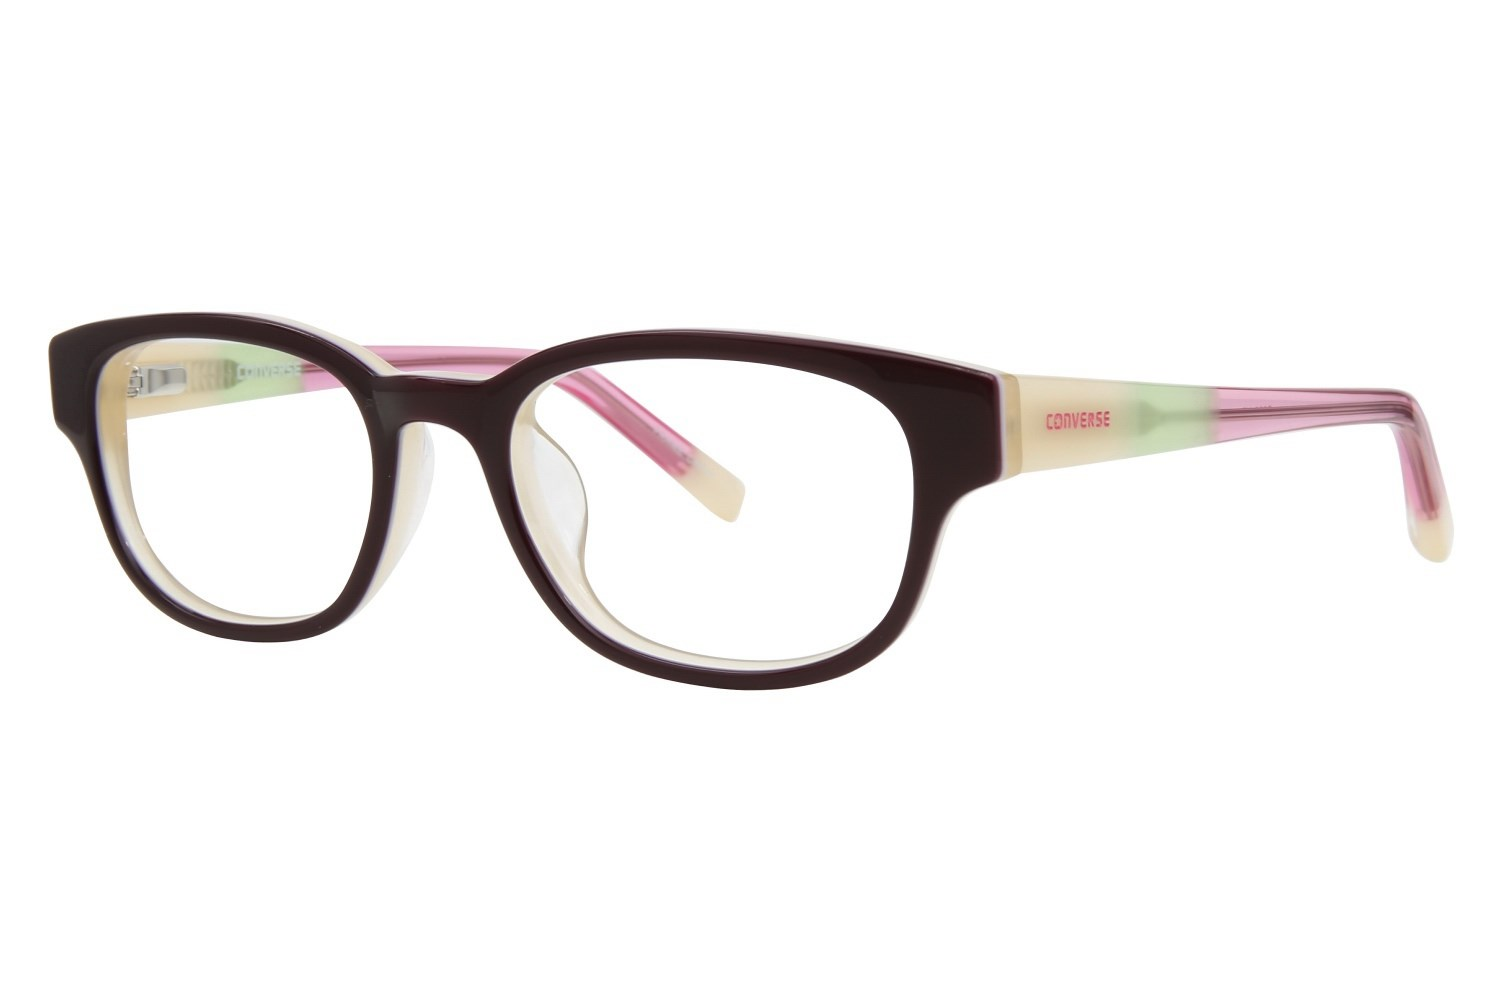 converse-q005-prescription-eyeglasses